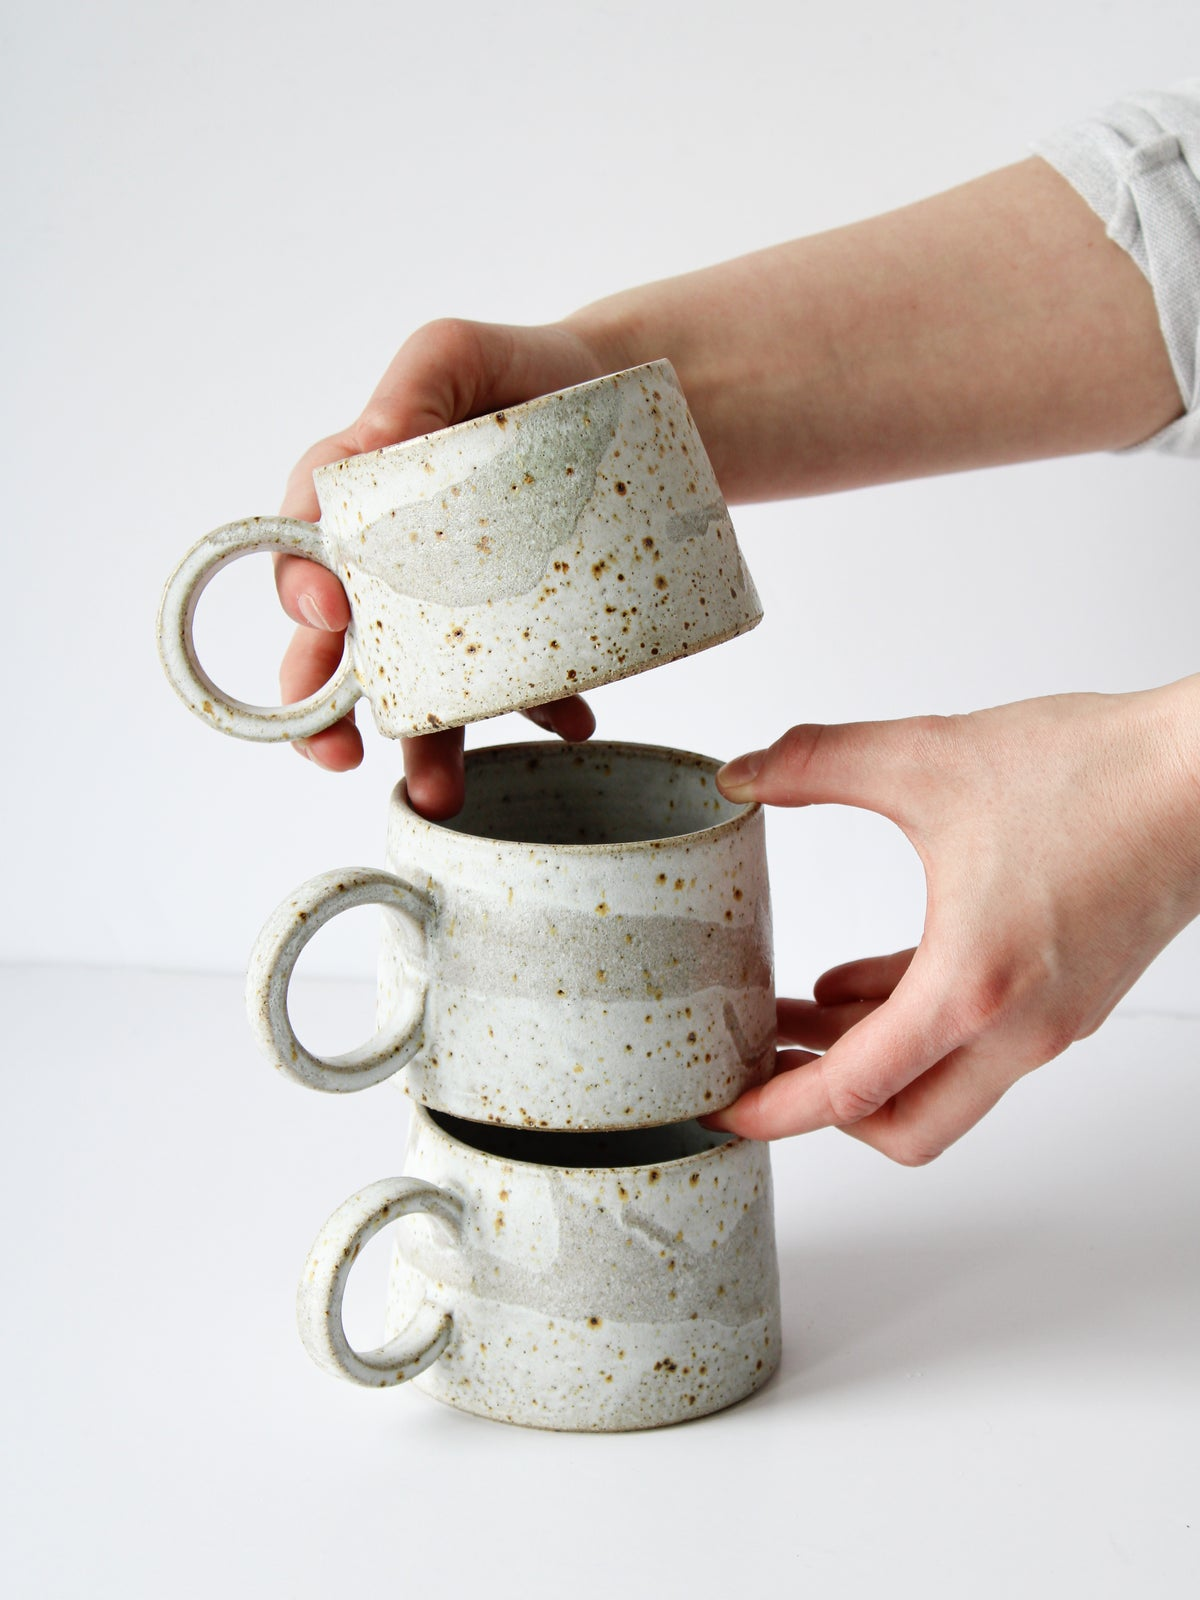 Image of handled mug